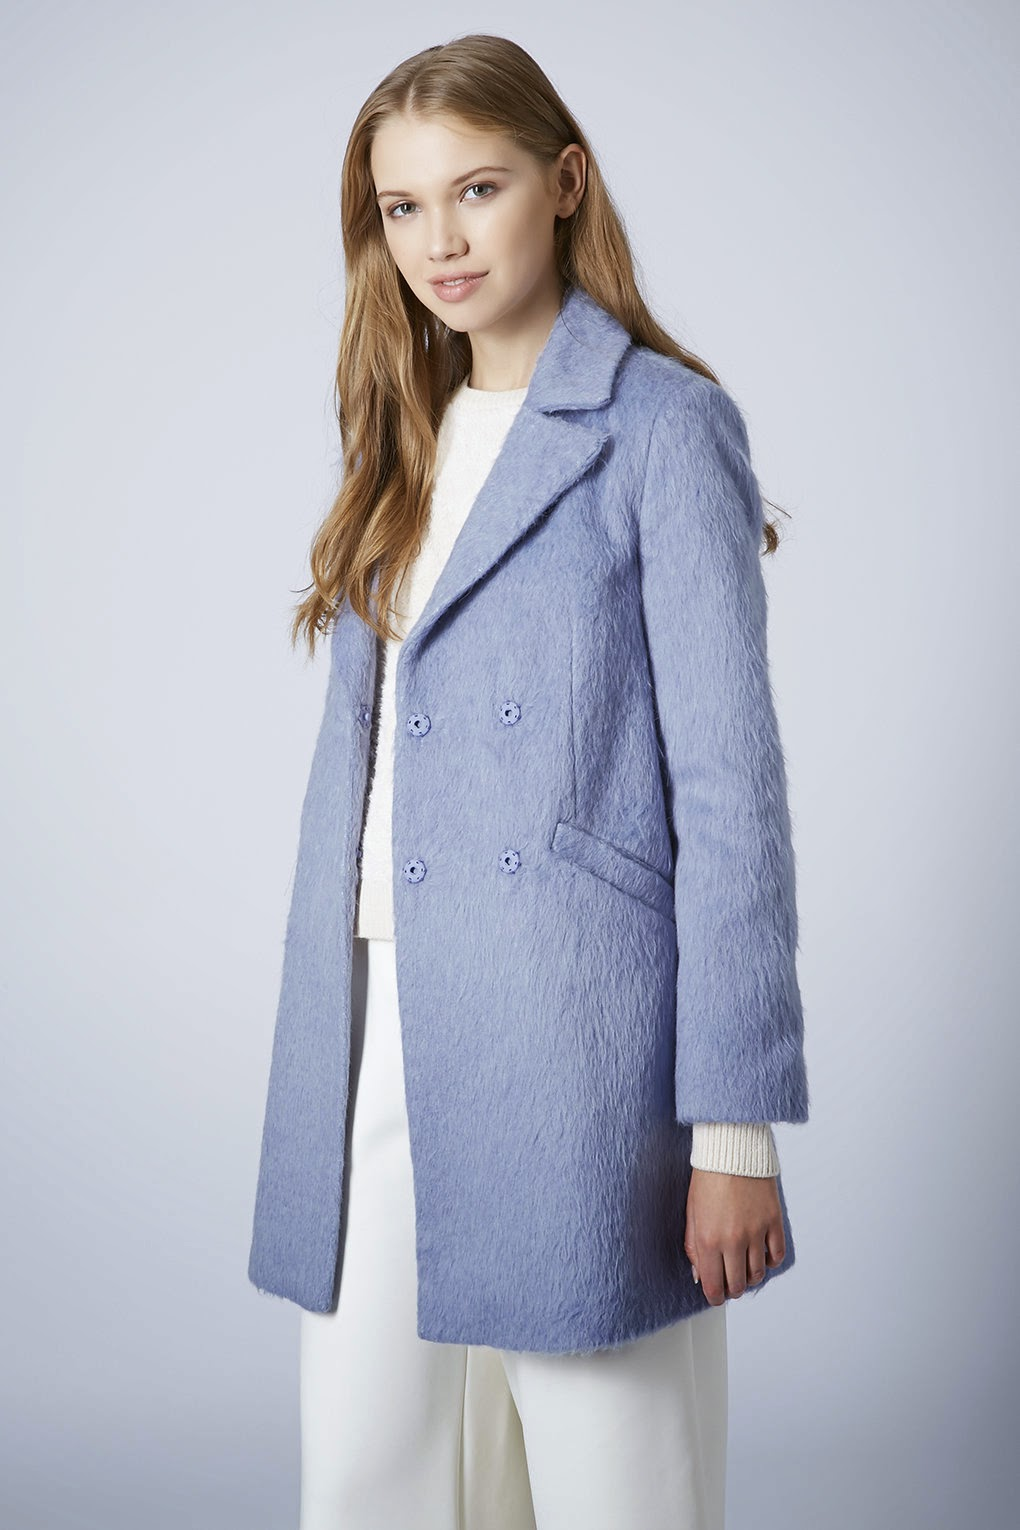 sky blue wool coat